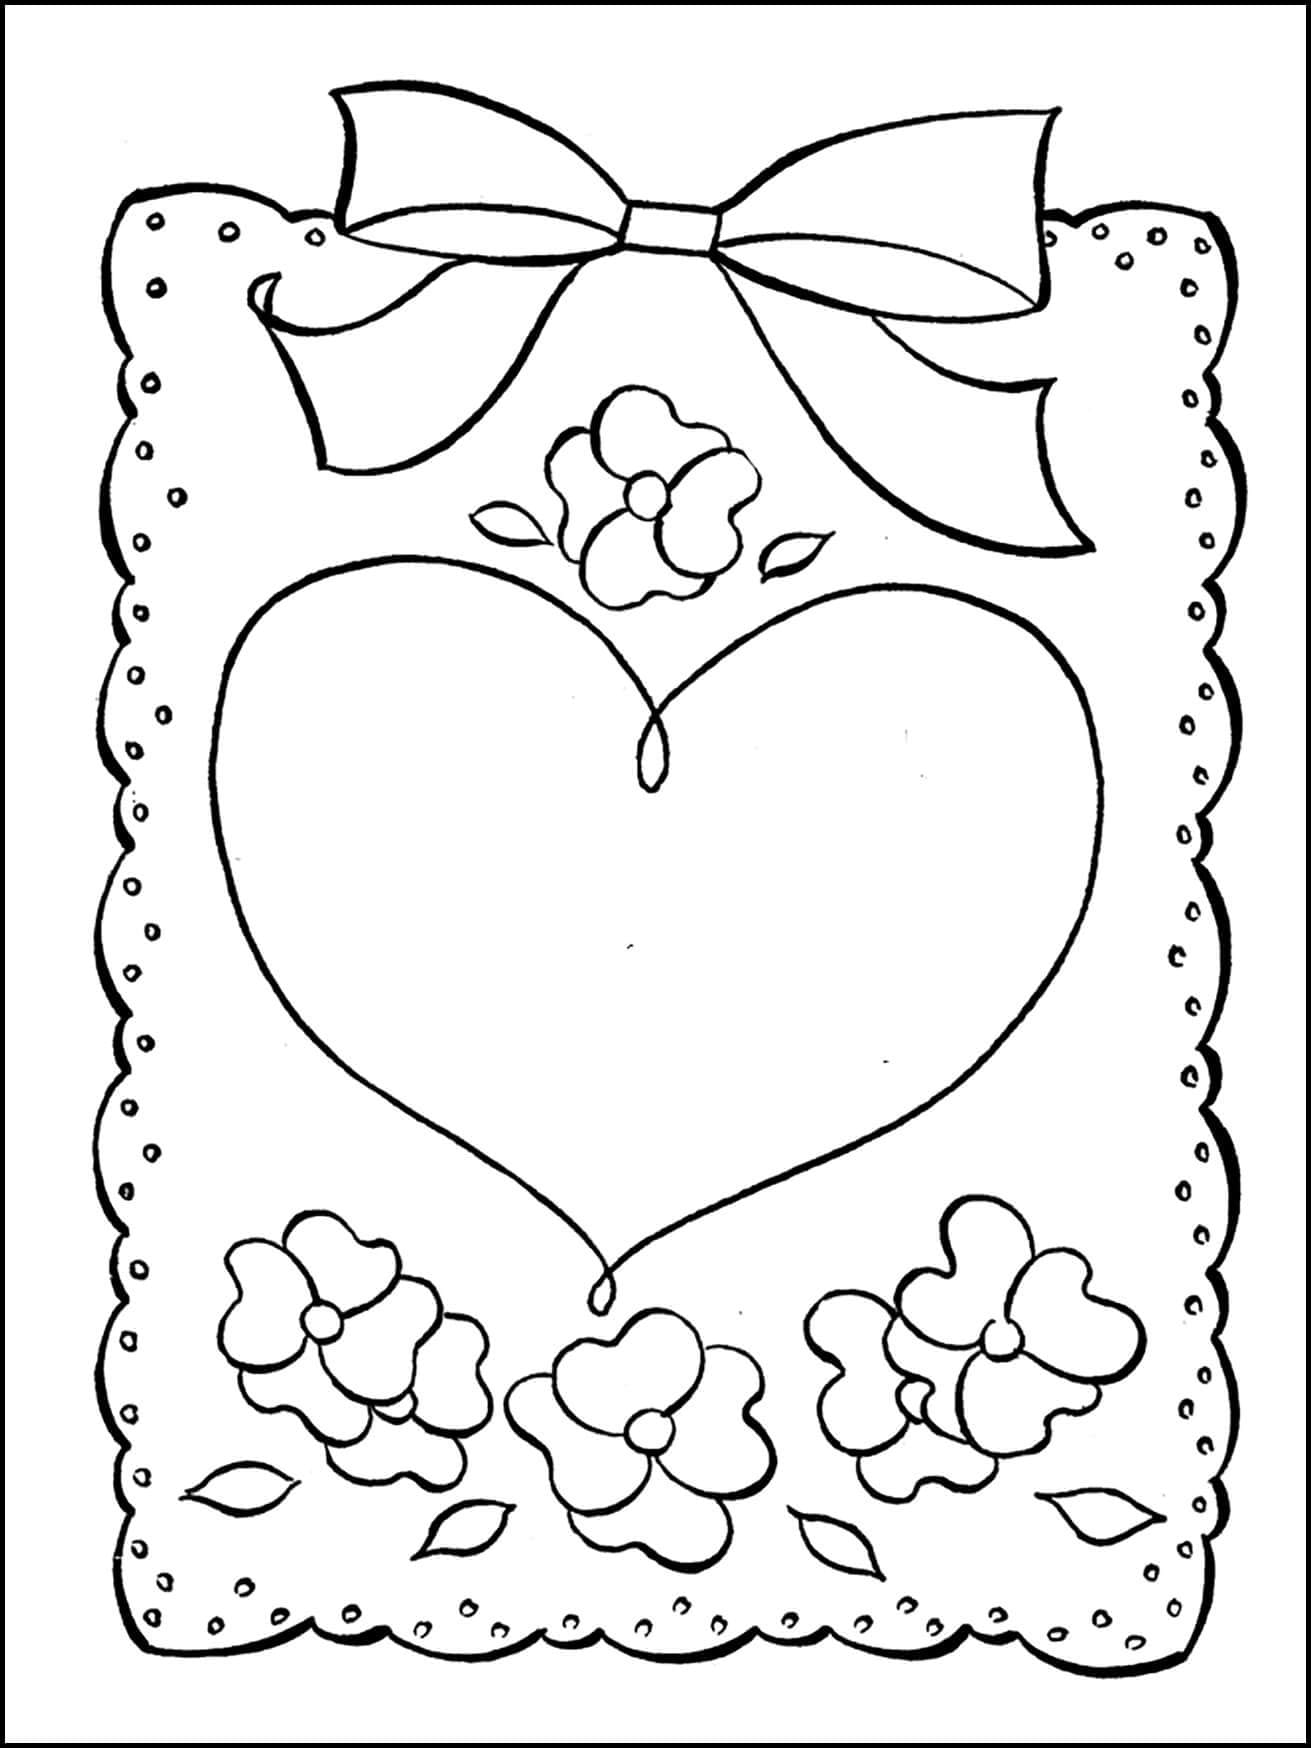 Coloring card with heart